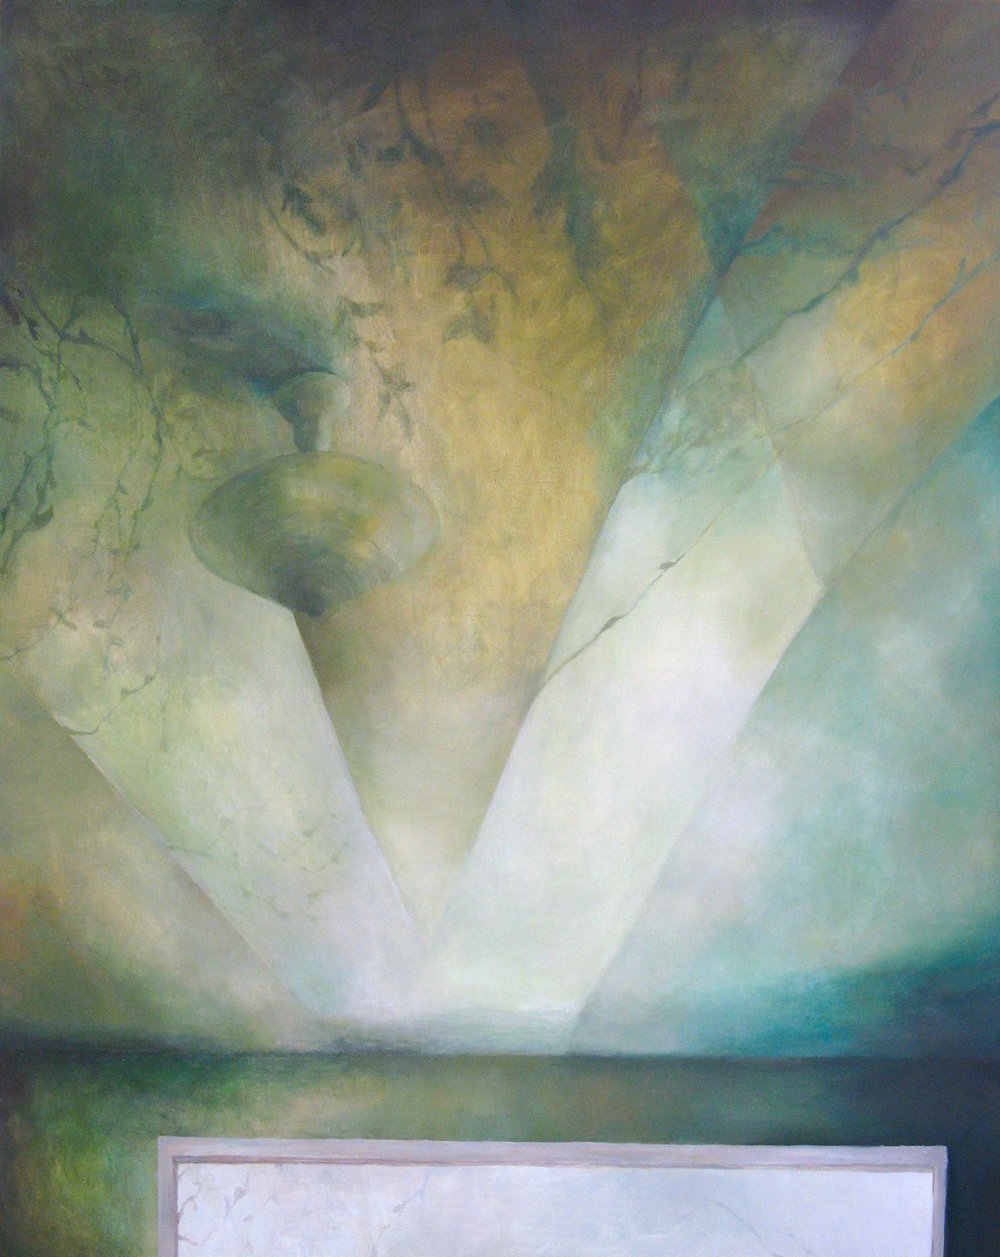 Ceiling with Shadows, Oil on Canvas, 60 x 48 inches, 2011